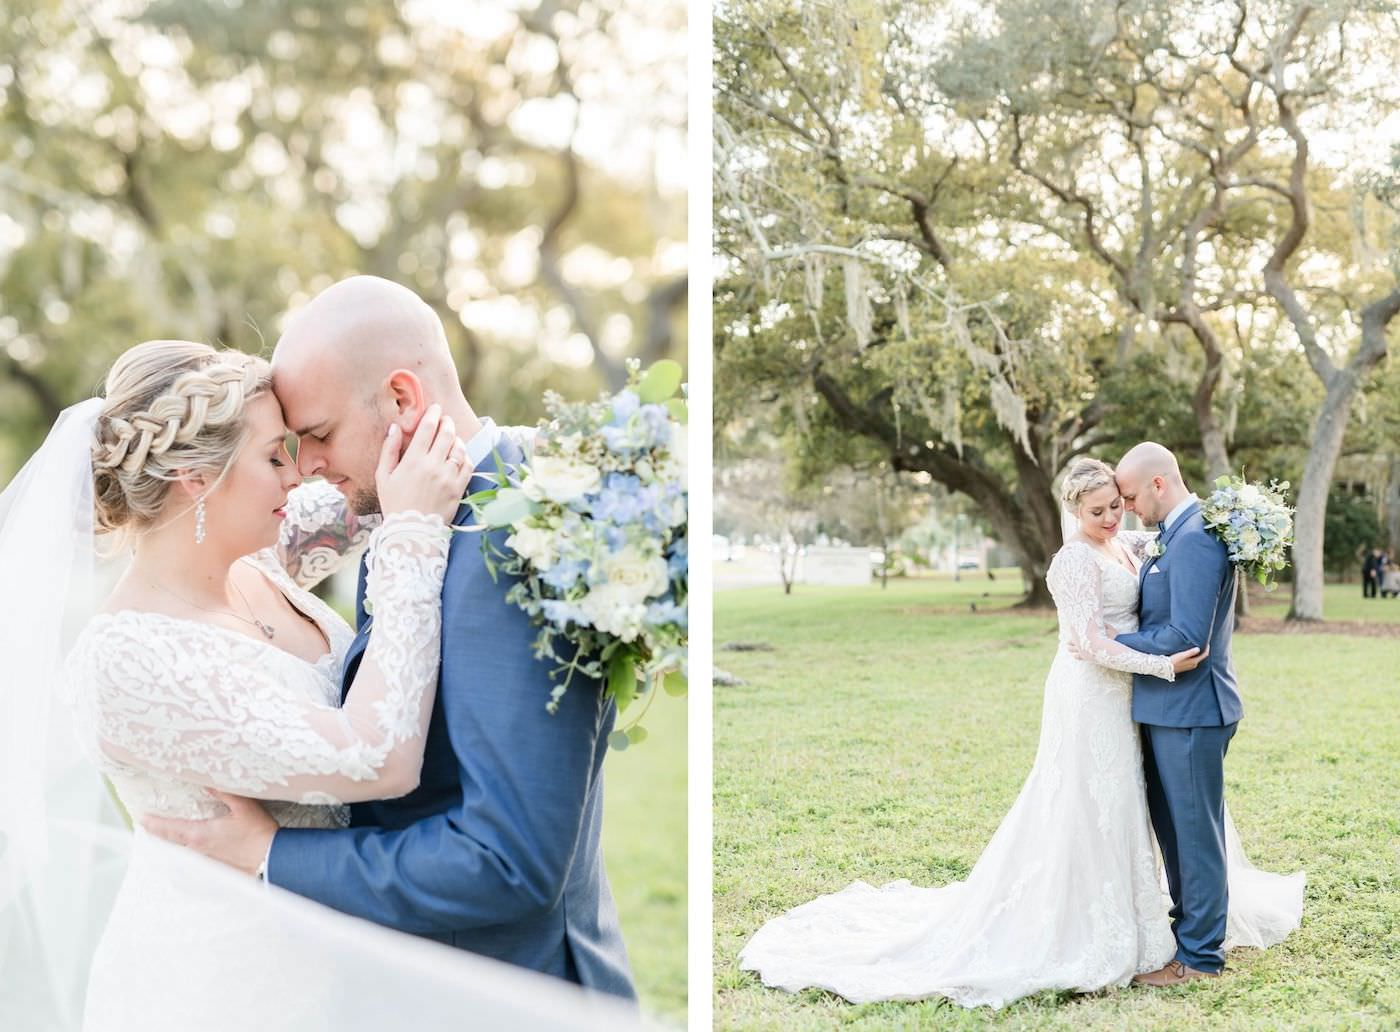 Bride and Groom Outdoor Garden Portraits   Ivory Lace Long Sleeve V Neck Bridal Gown and Groom in Blue Suit with Bow Tie   Blue and White Bridal Bouquet